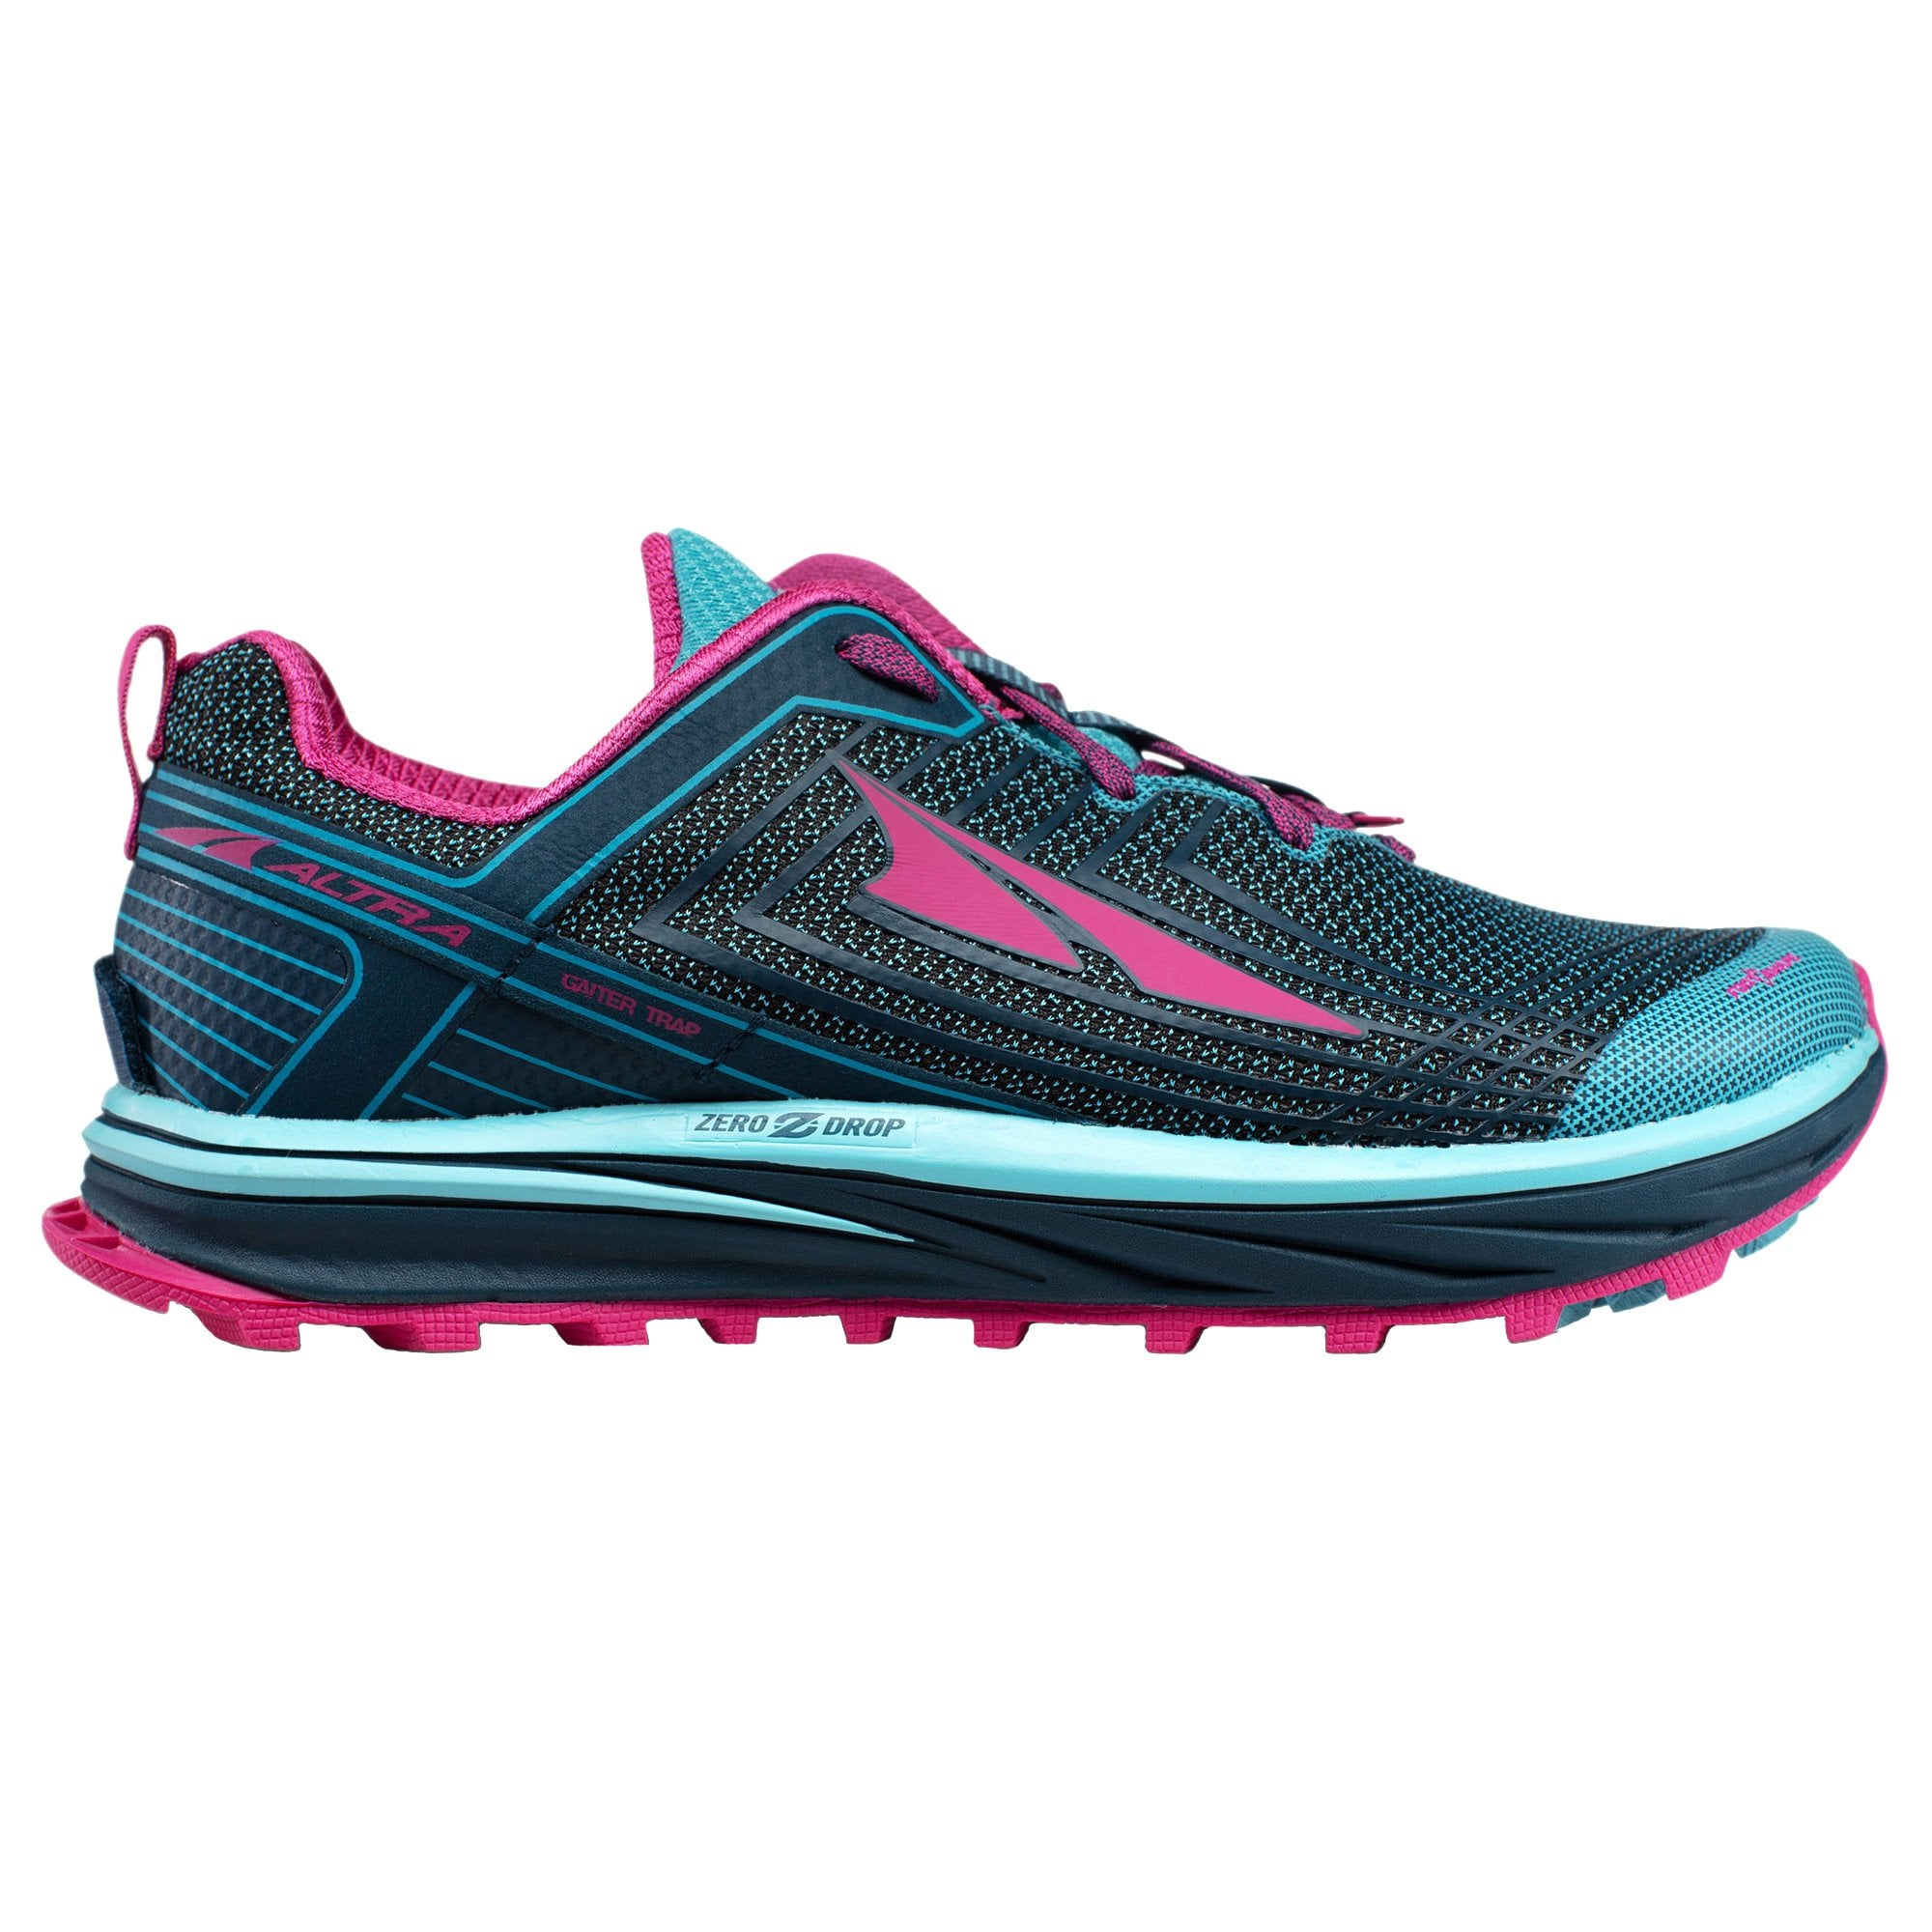 Timp 1 5 Womens Higher Cushioning Zero Drop Trail Running Shoes Blue Raspberry At Northernrunner Com